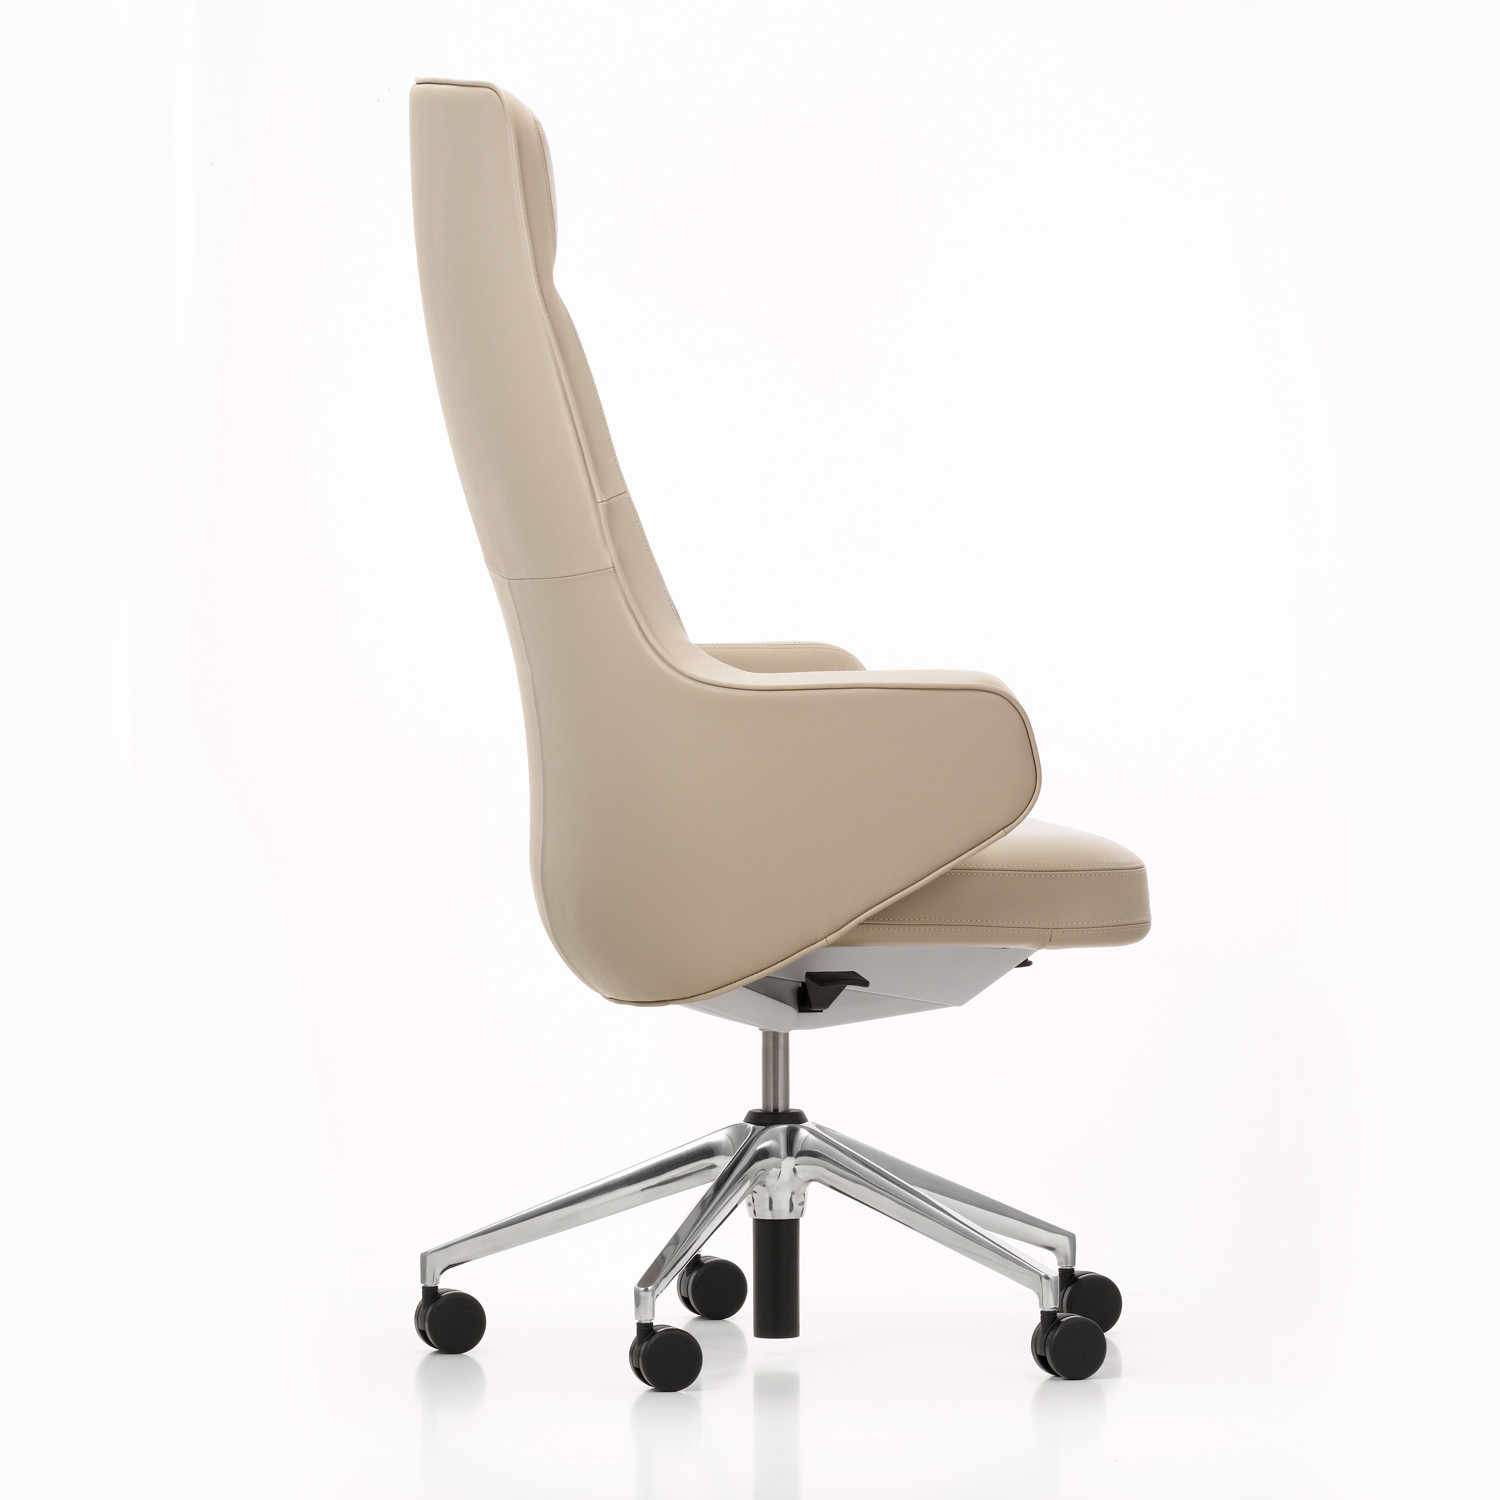 Skape Executive Office Armchair from Vitra